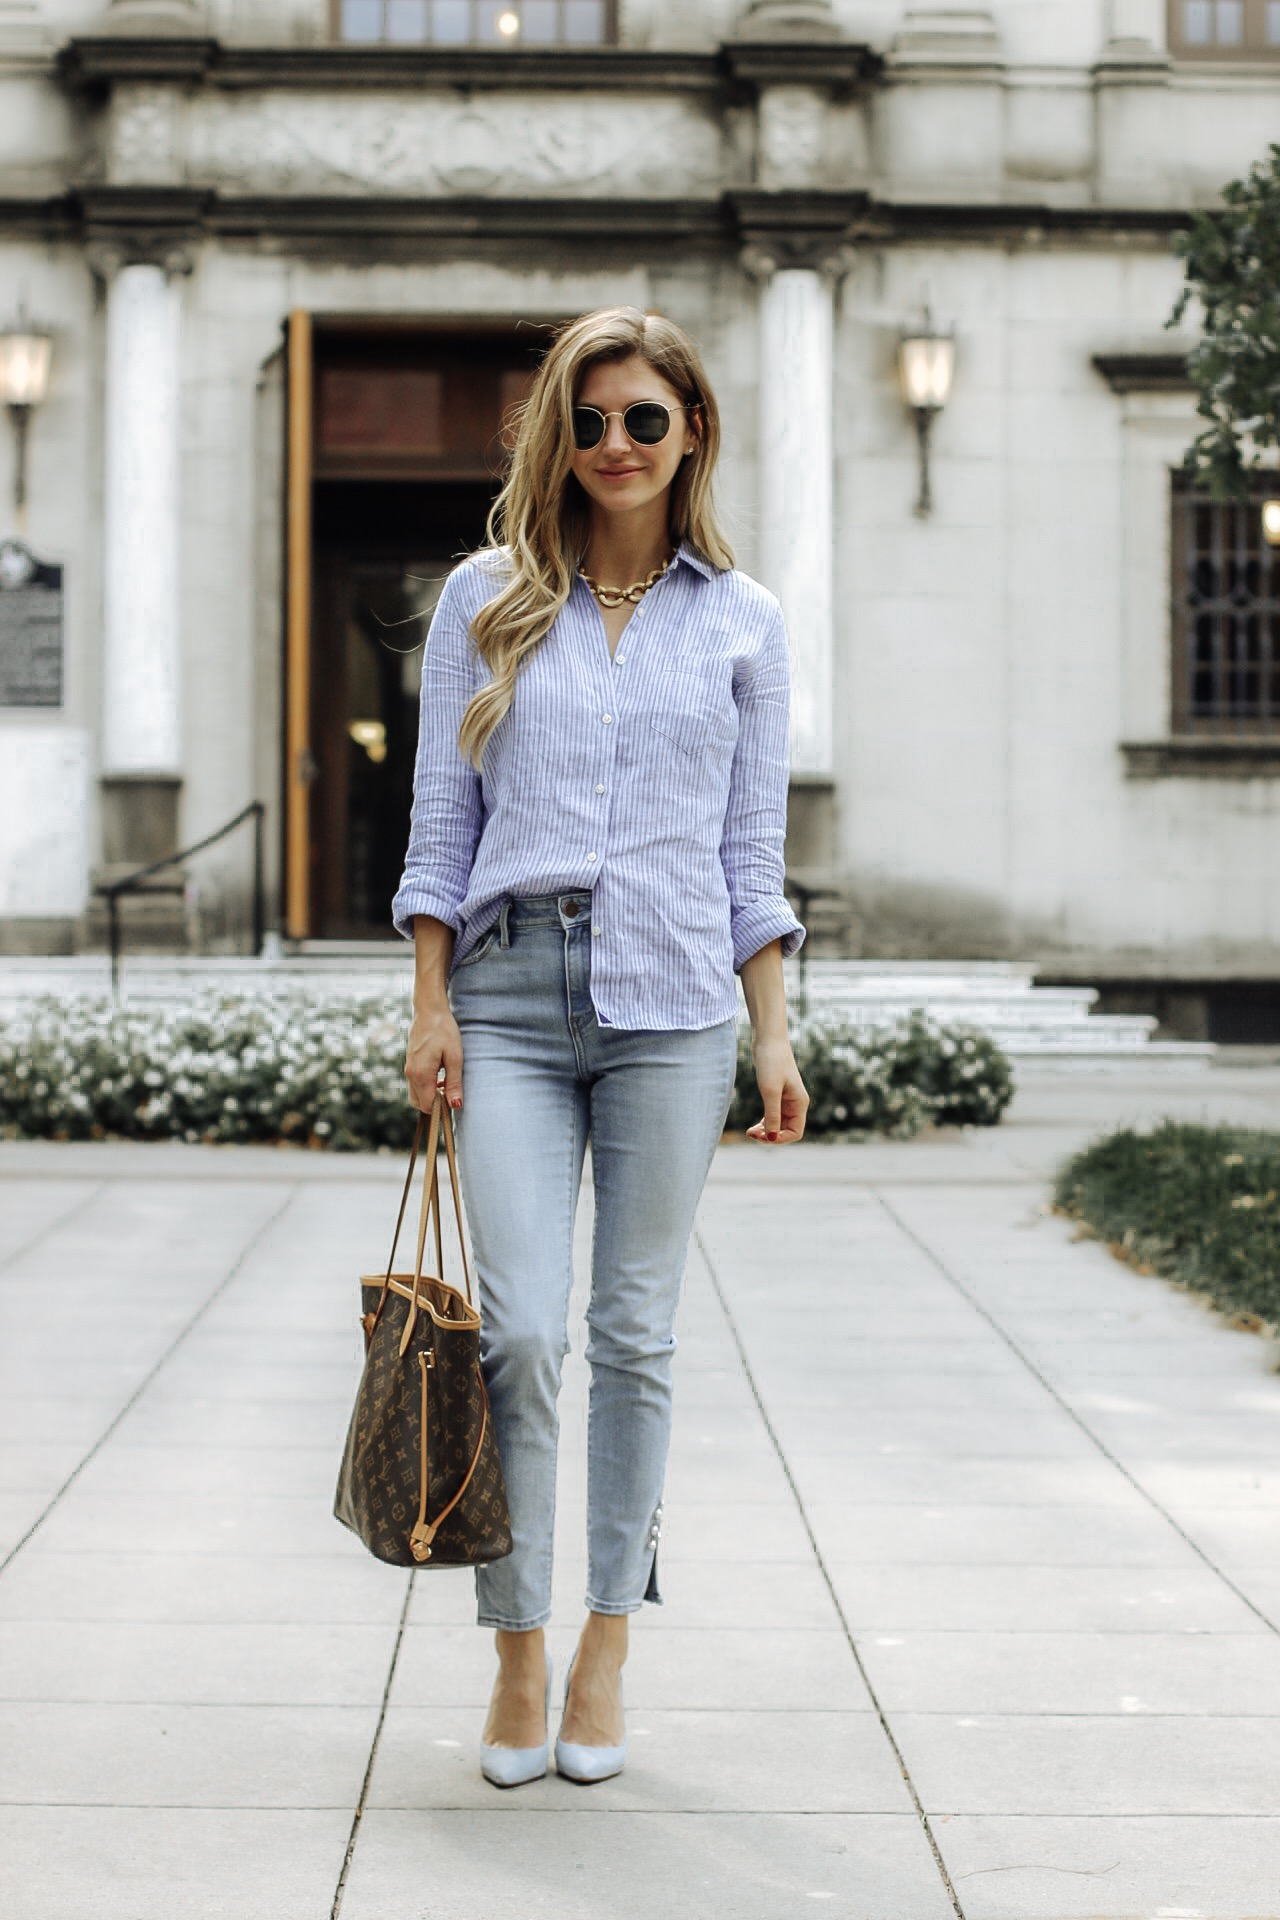 full look on fashionista. shes wearing cropped jeans, button down and julie vos necklace